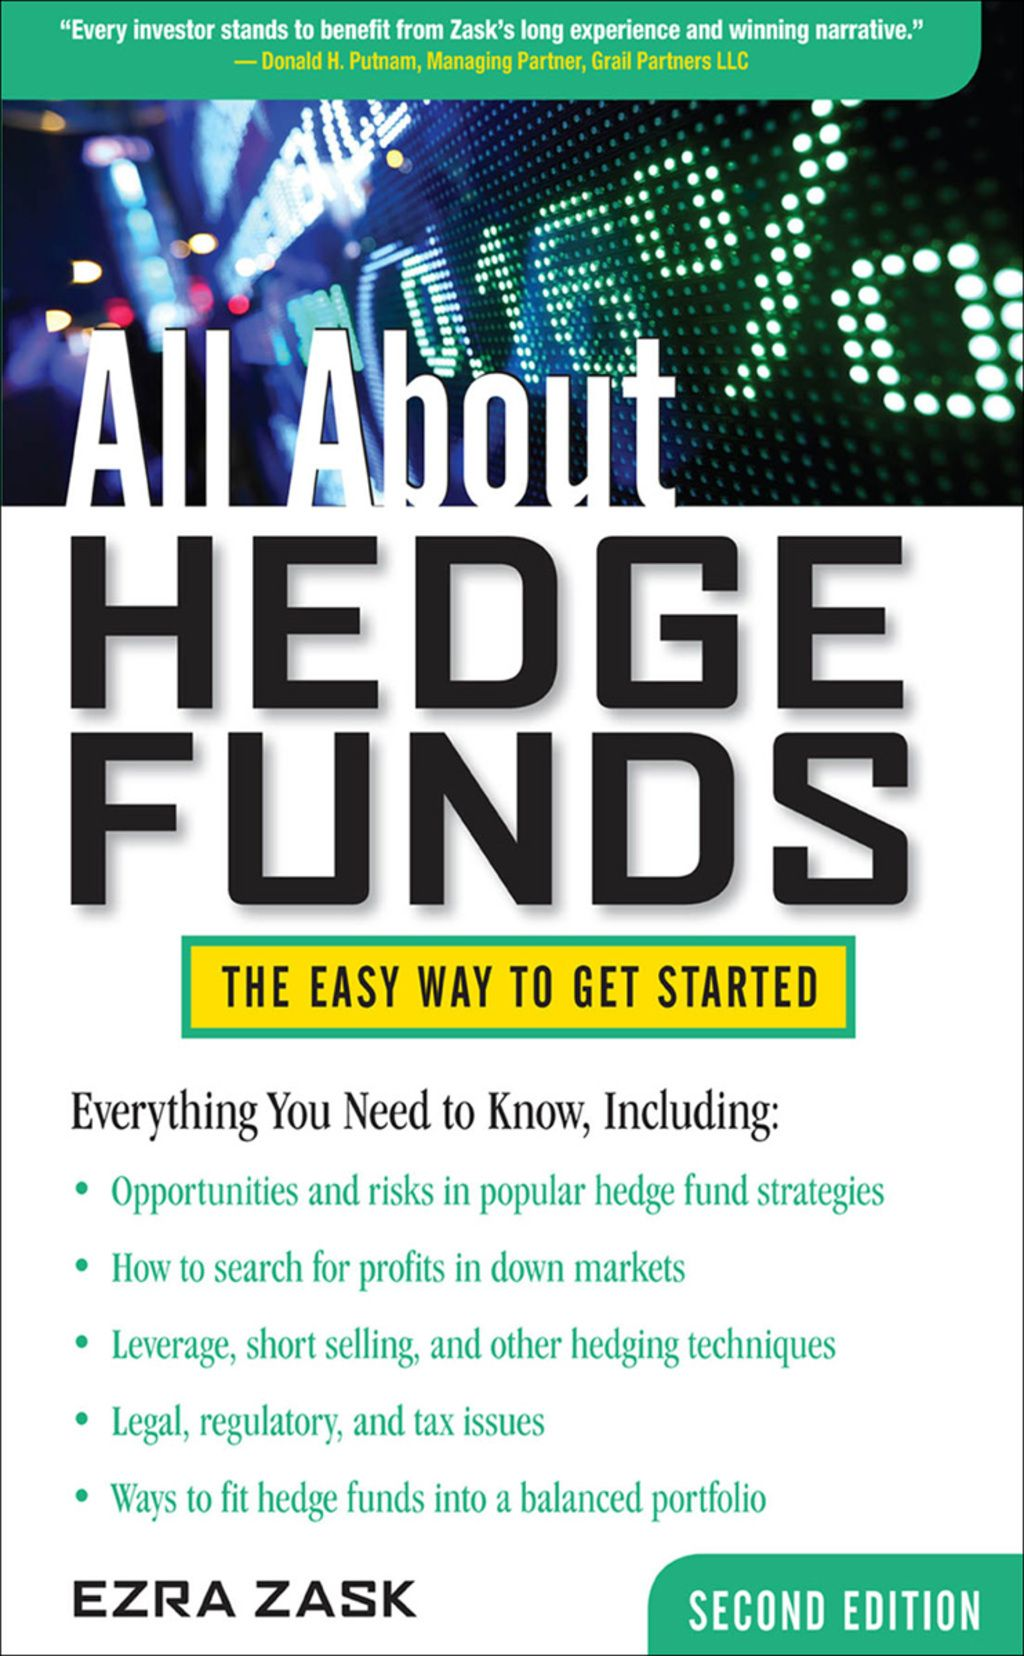 All About Hedge Funds Fully Revised Second Edition Ebook In 2019